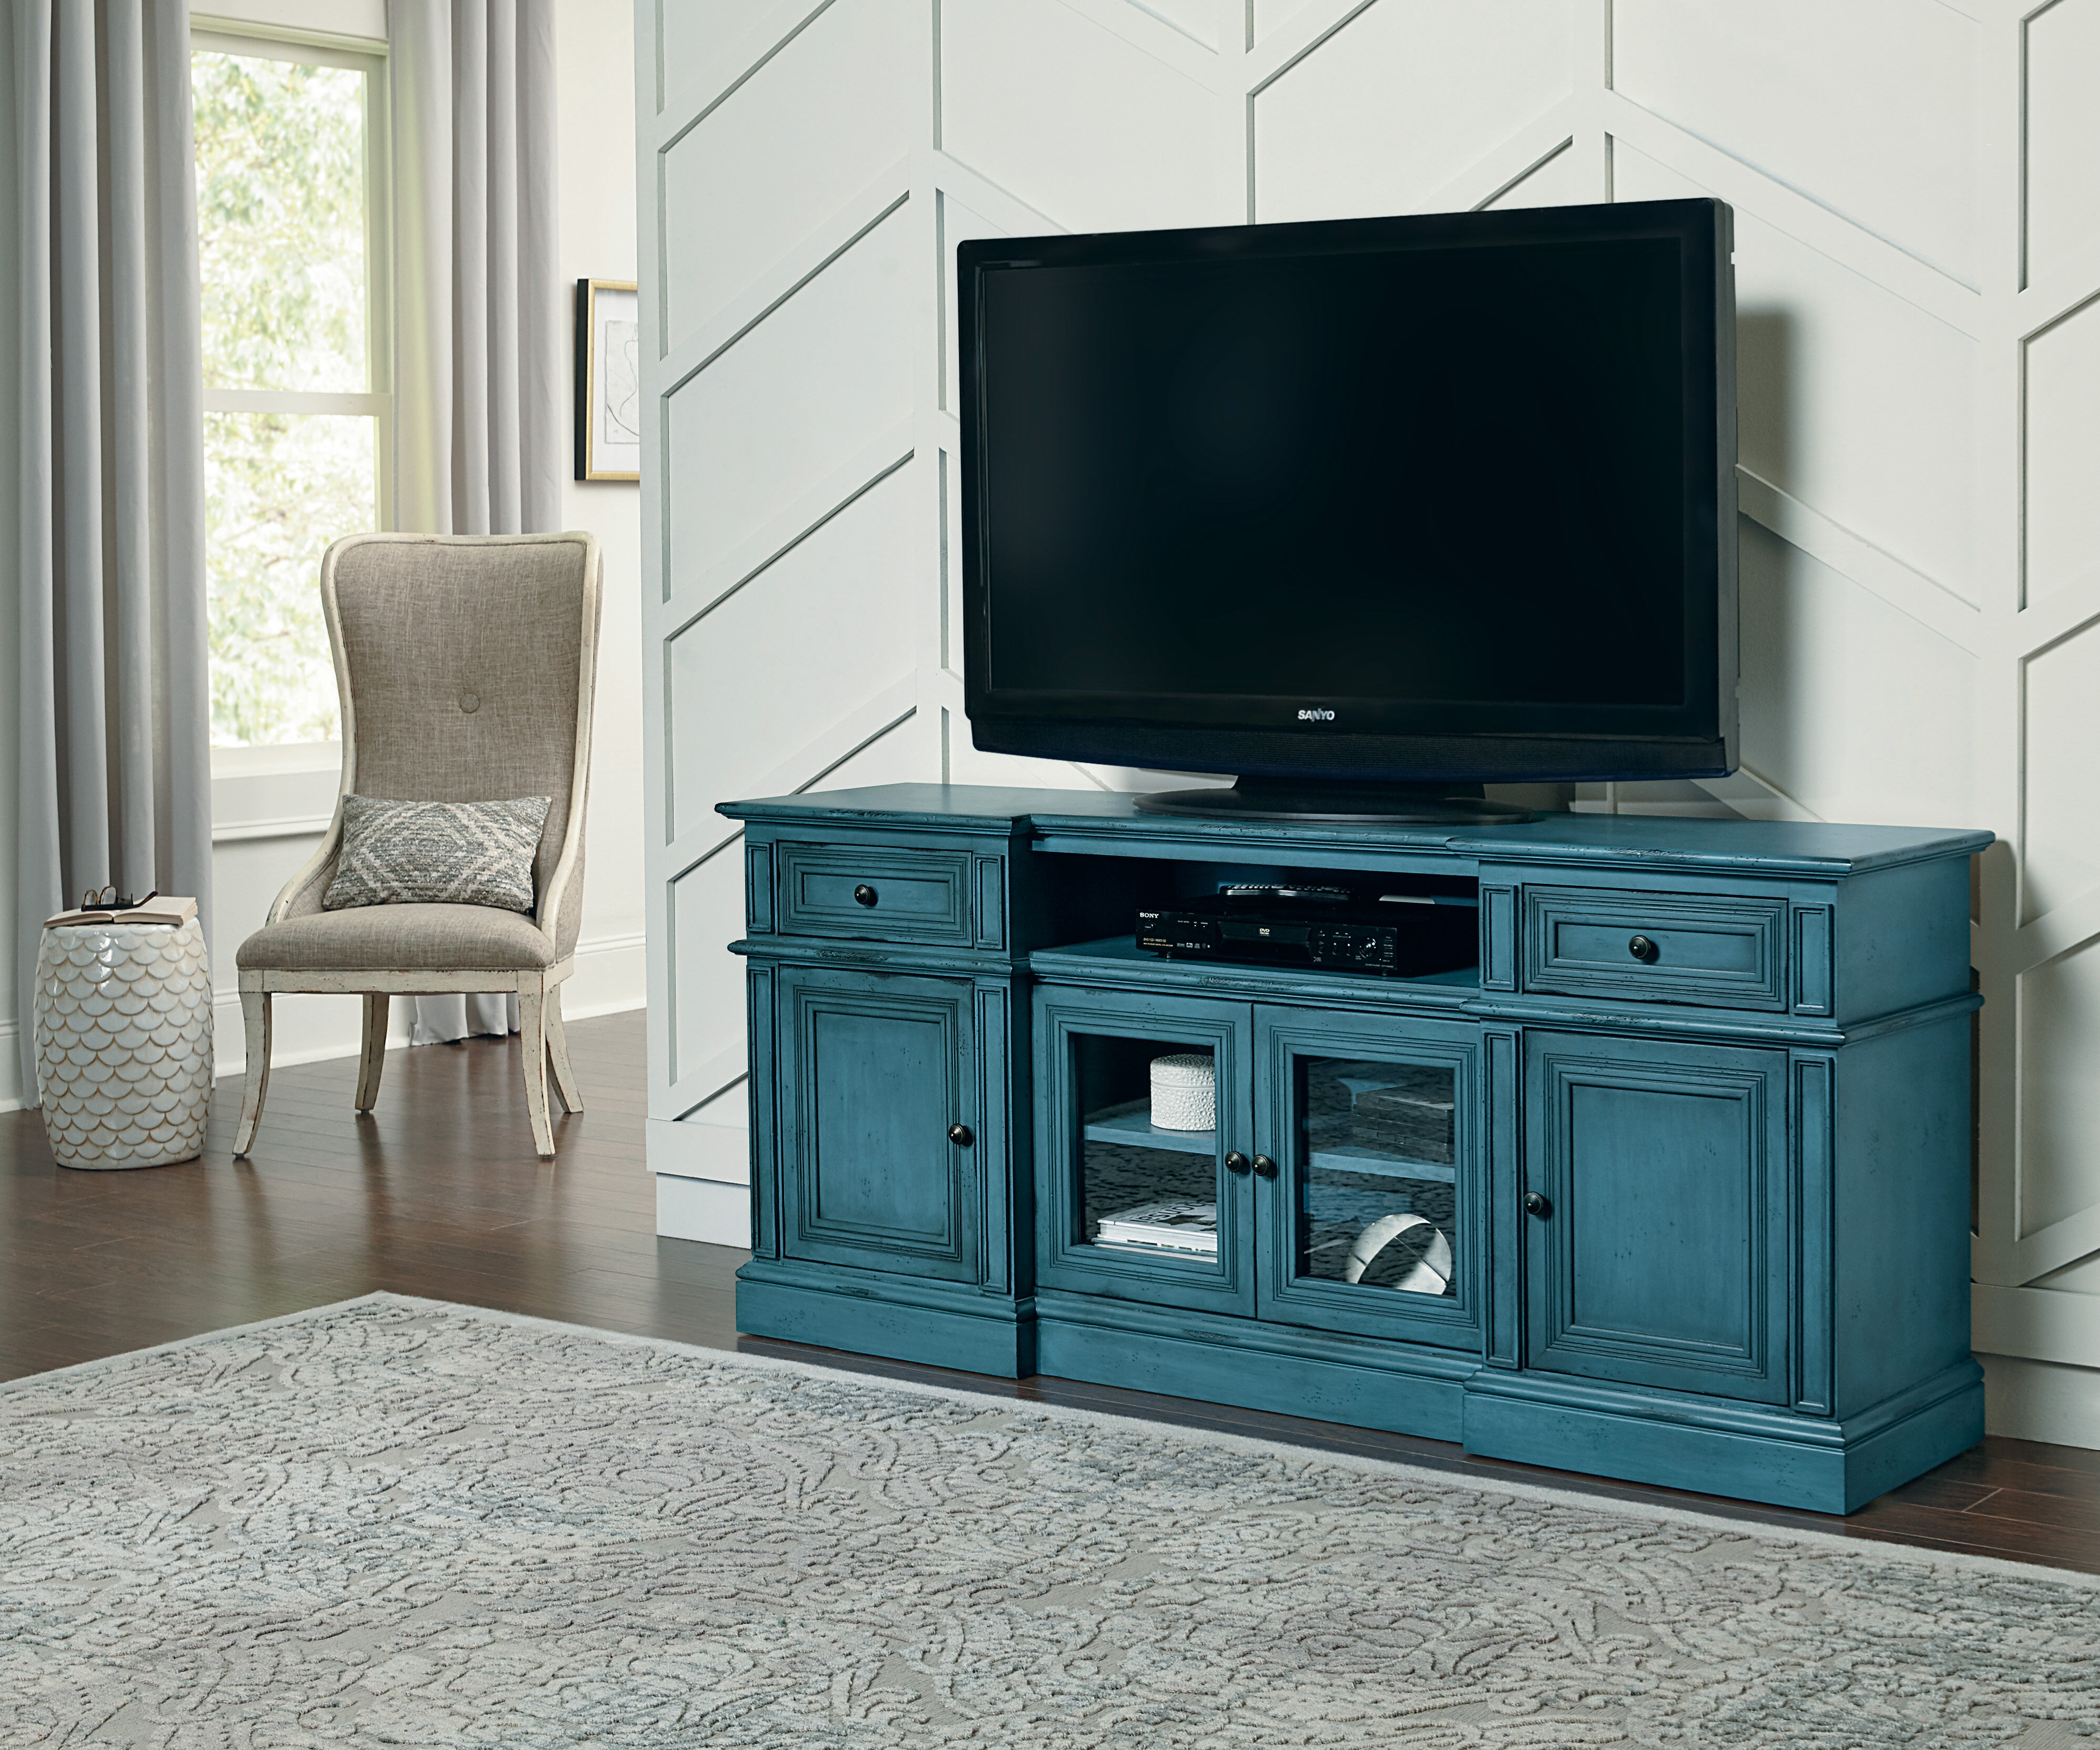 Darby Home Co Angelena Tv Stand For Tvs Up To 85 Reviews Wayfair